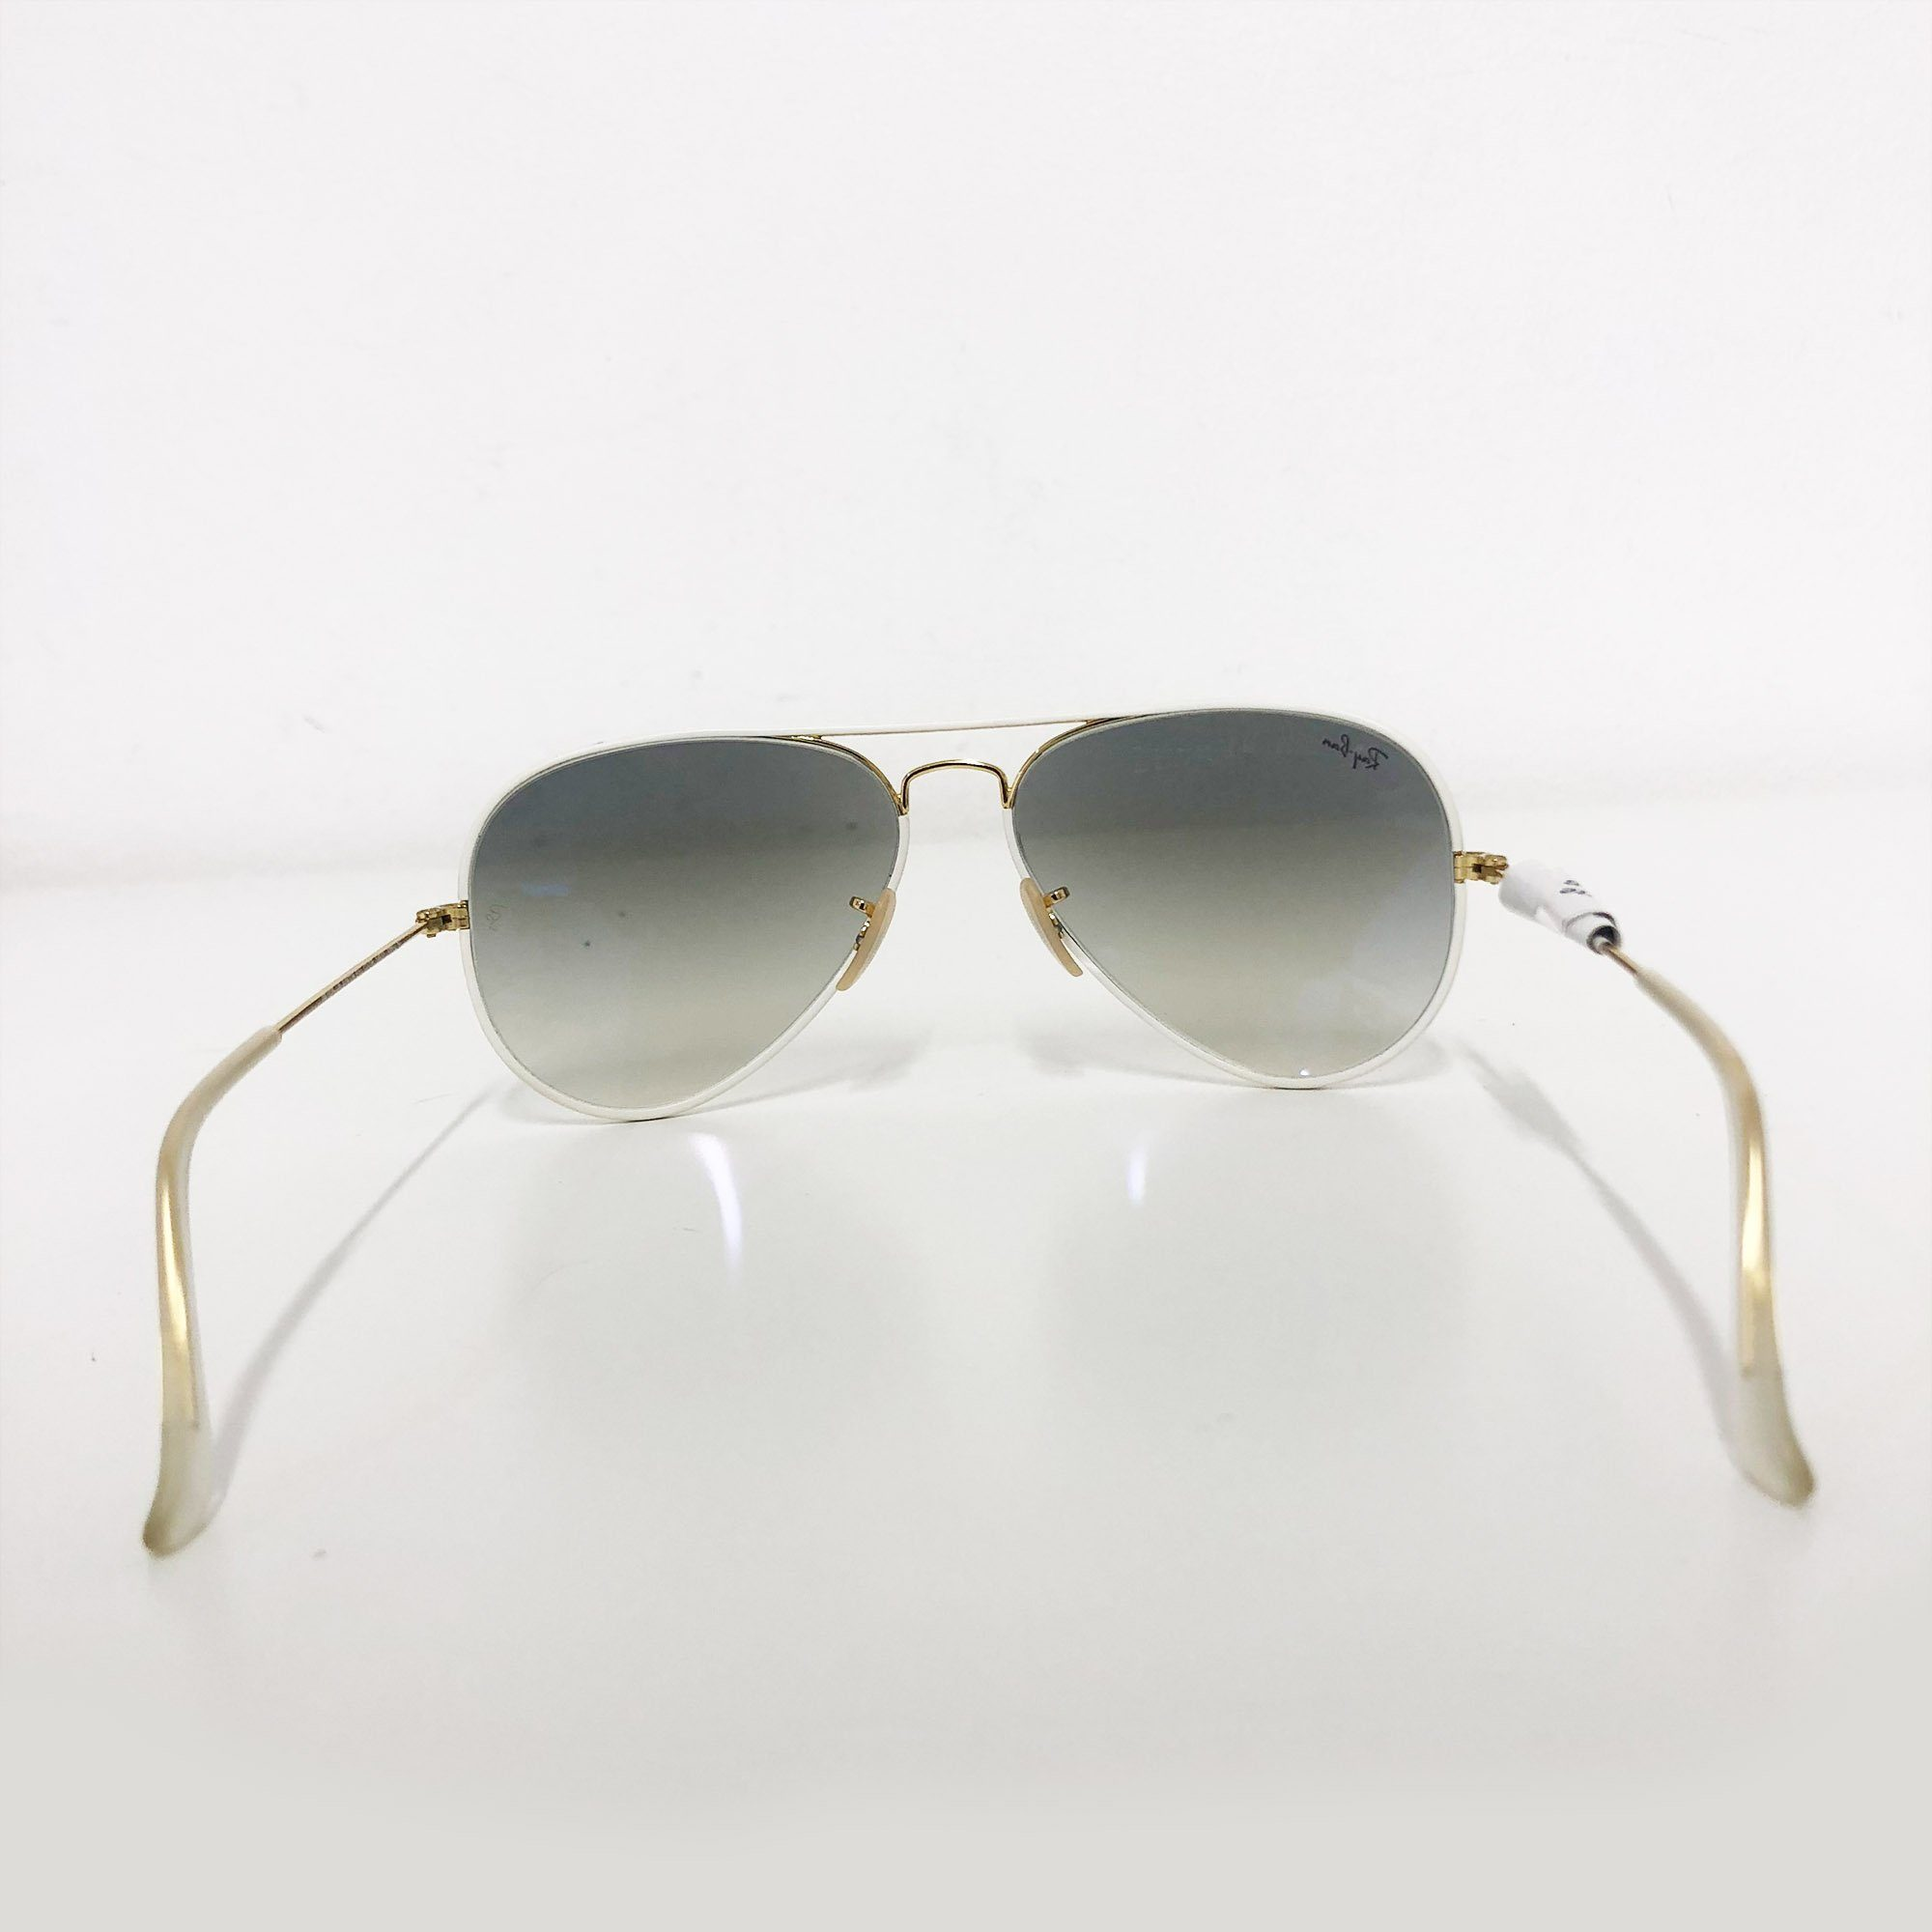 Ray Ban White Framed Aviator Sunglasses